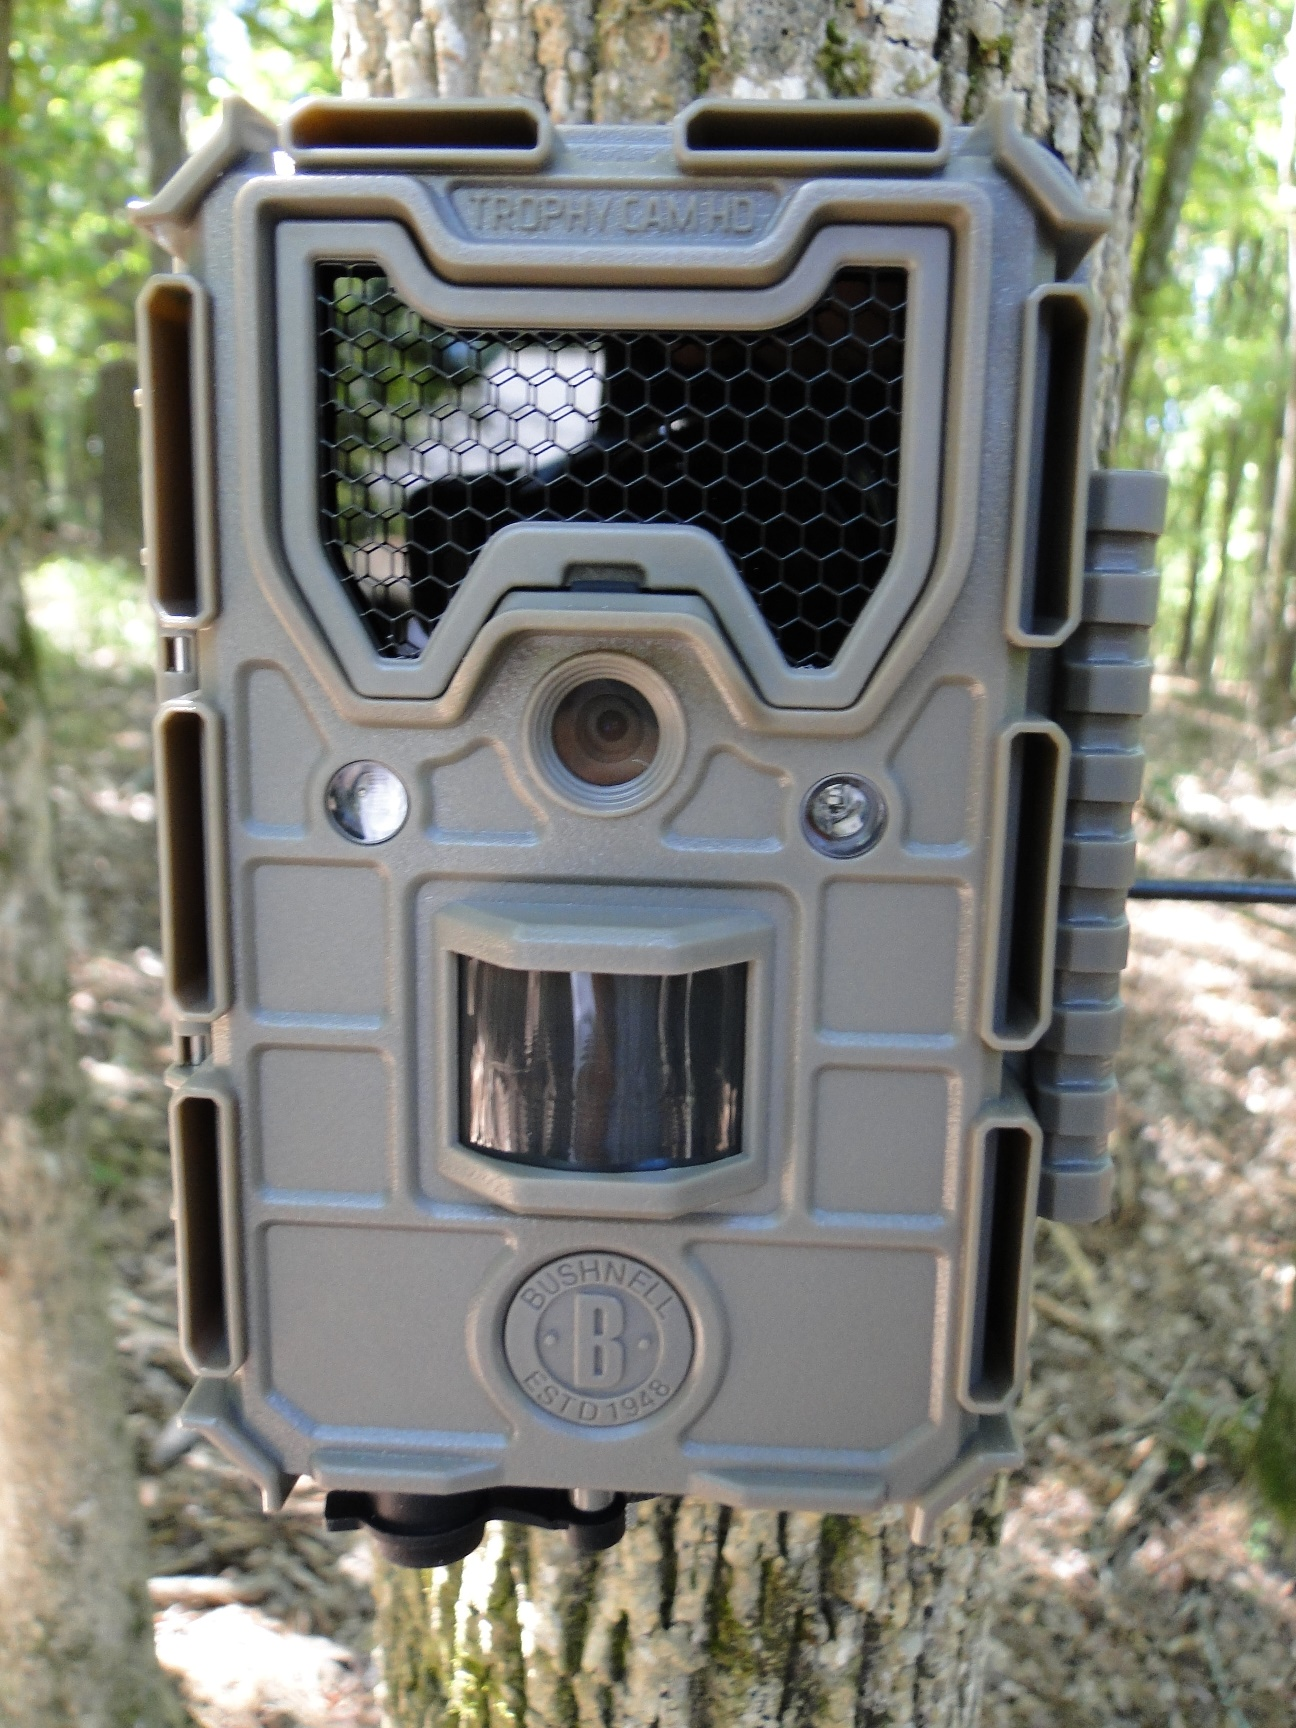 2017 Bushnell Trophy Cam HD Aggressor Camera Review (black flash)